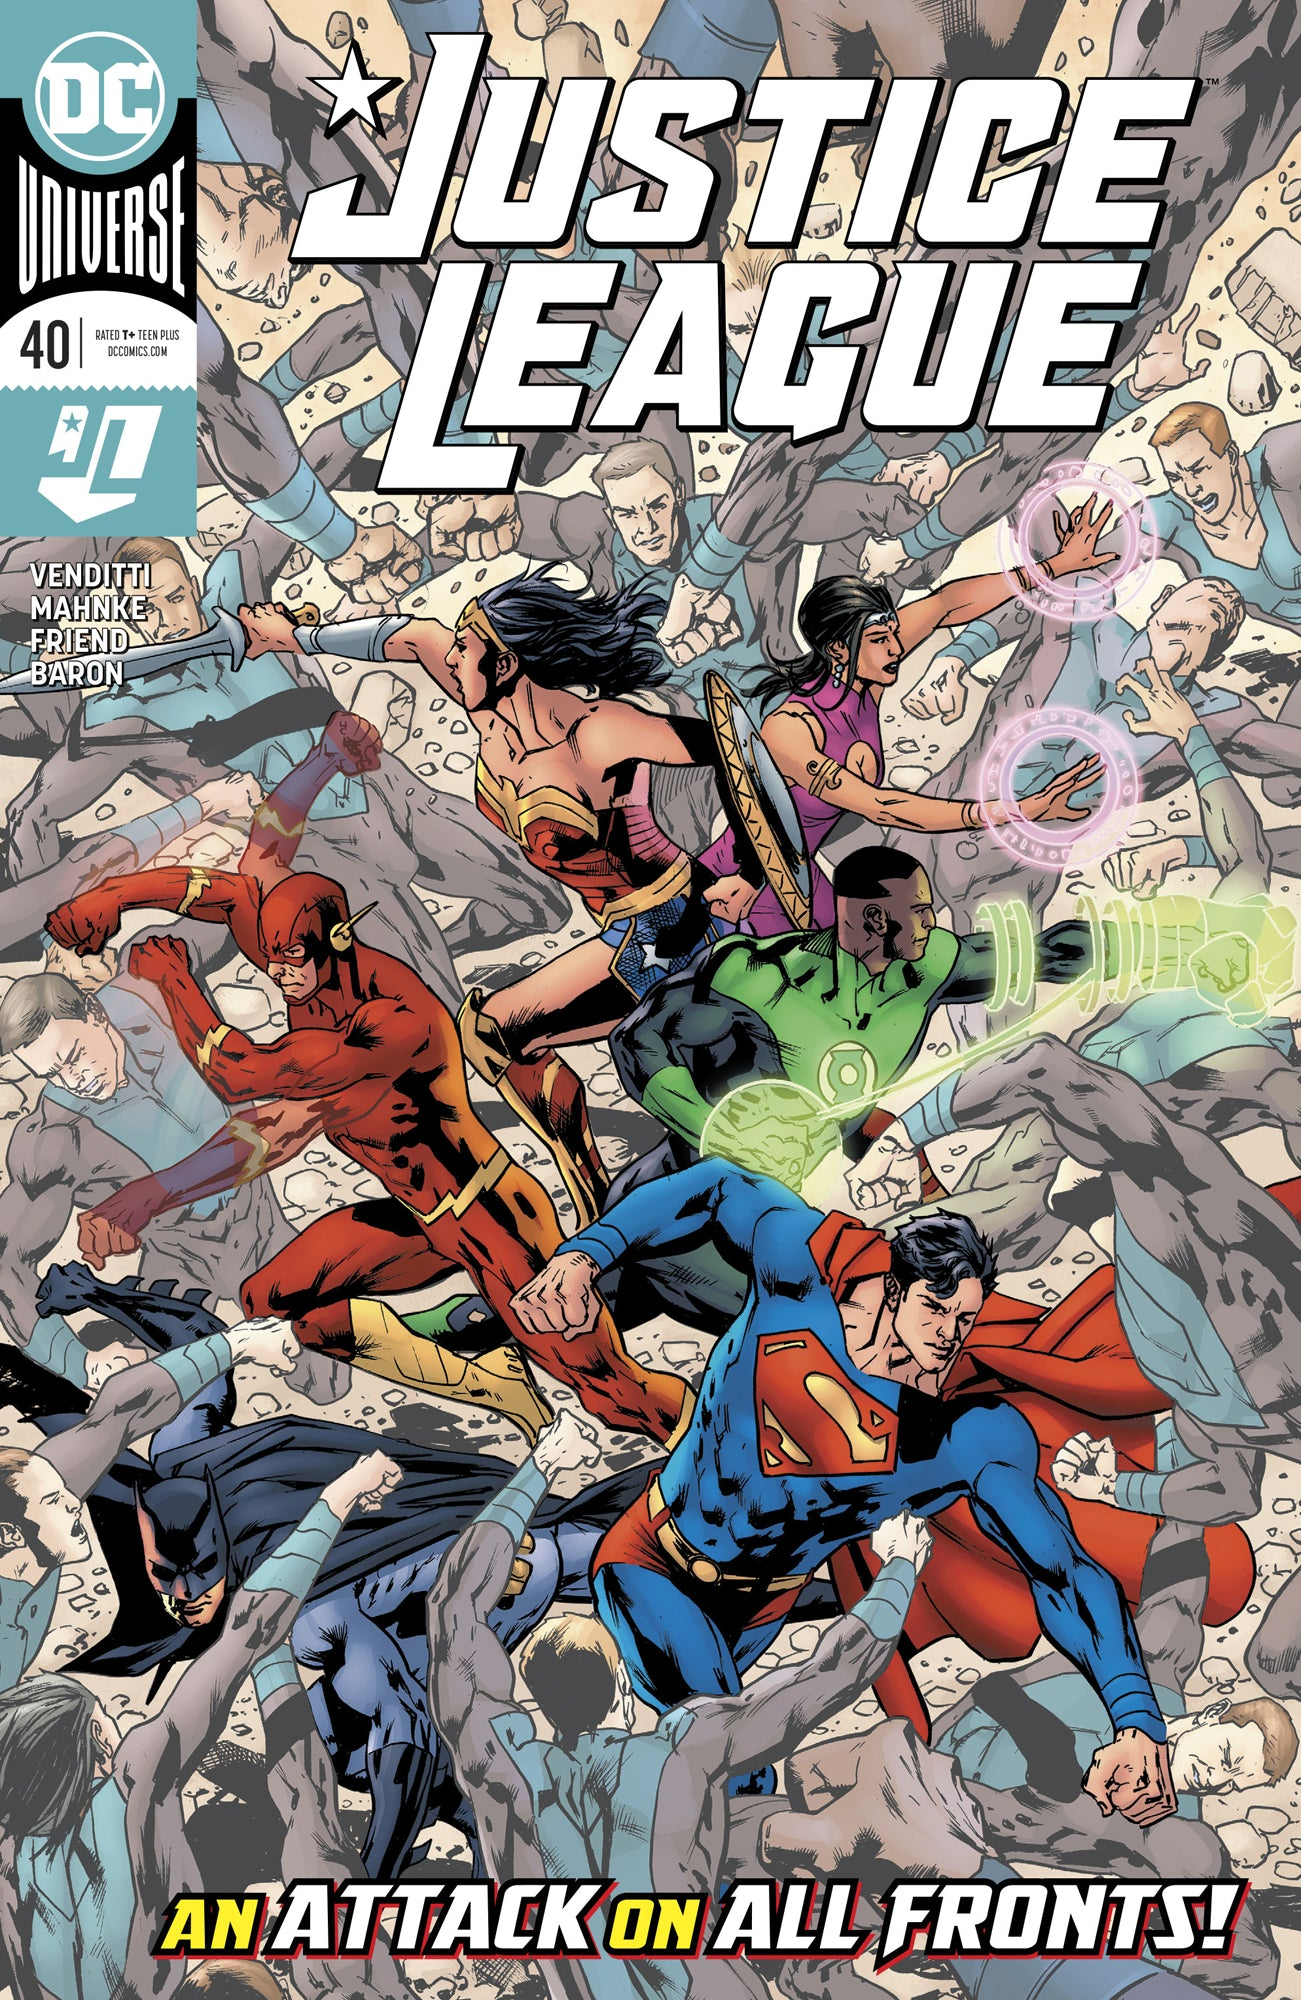 JUSTICE LEAGUE #40 | Game Master's Emporium (The New GME)